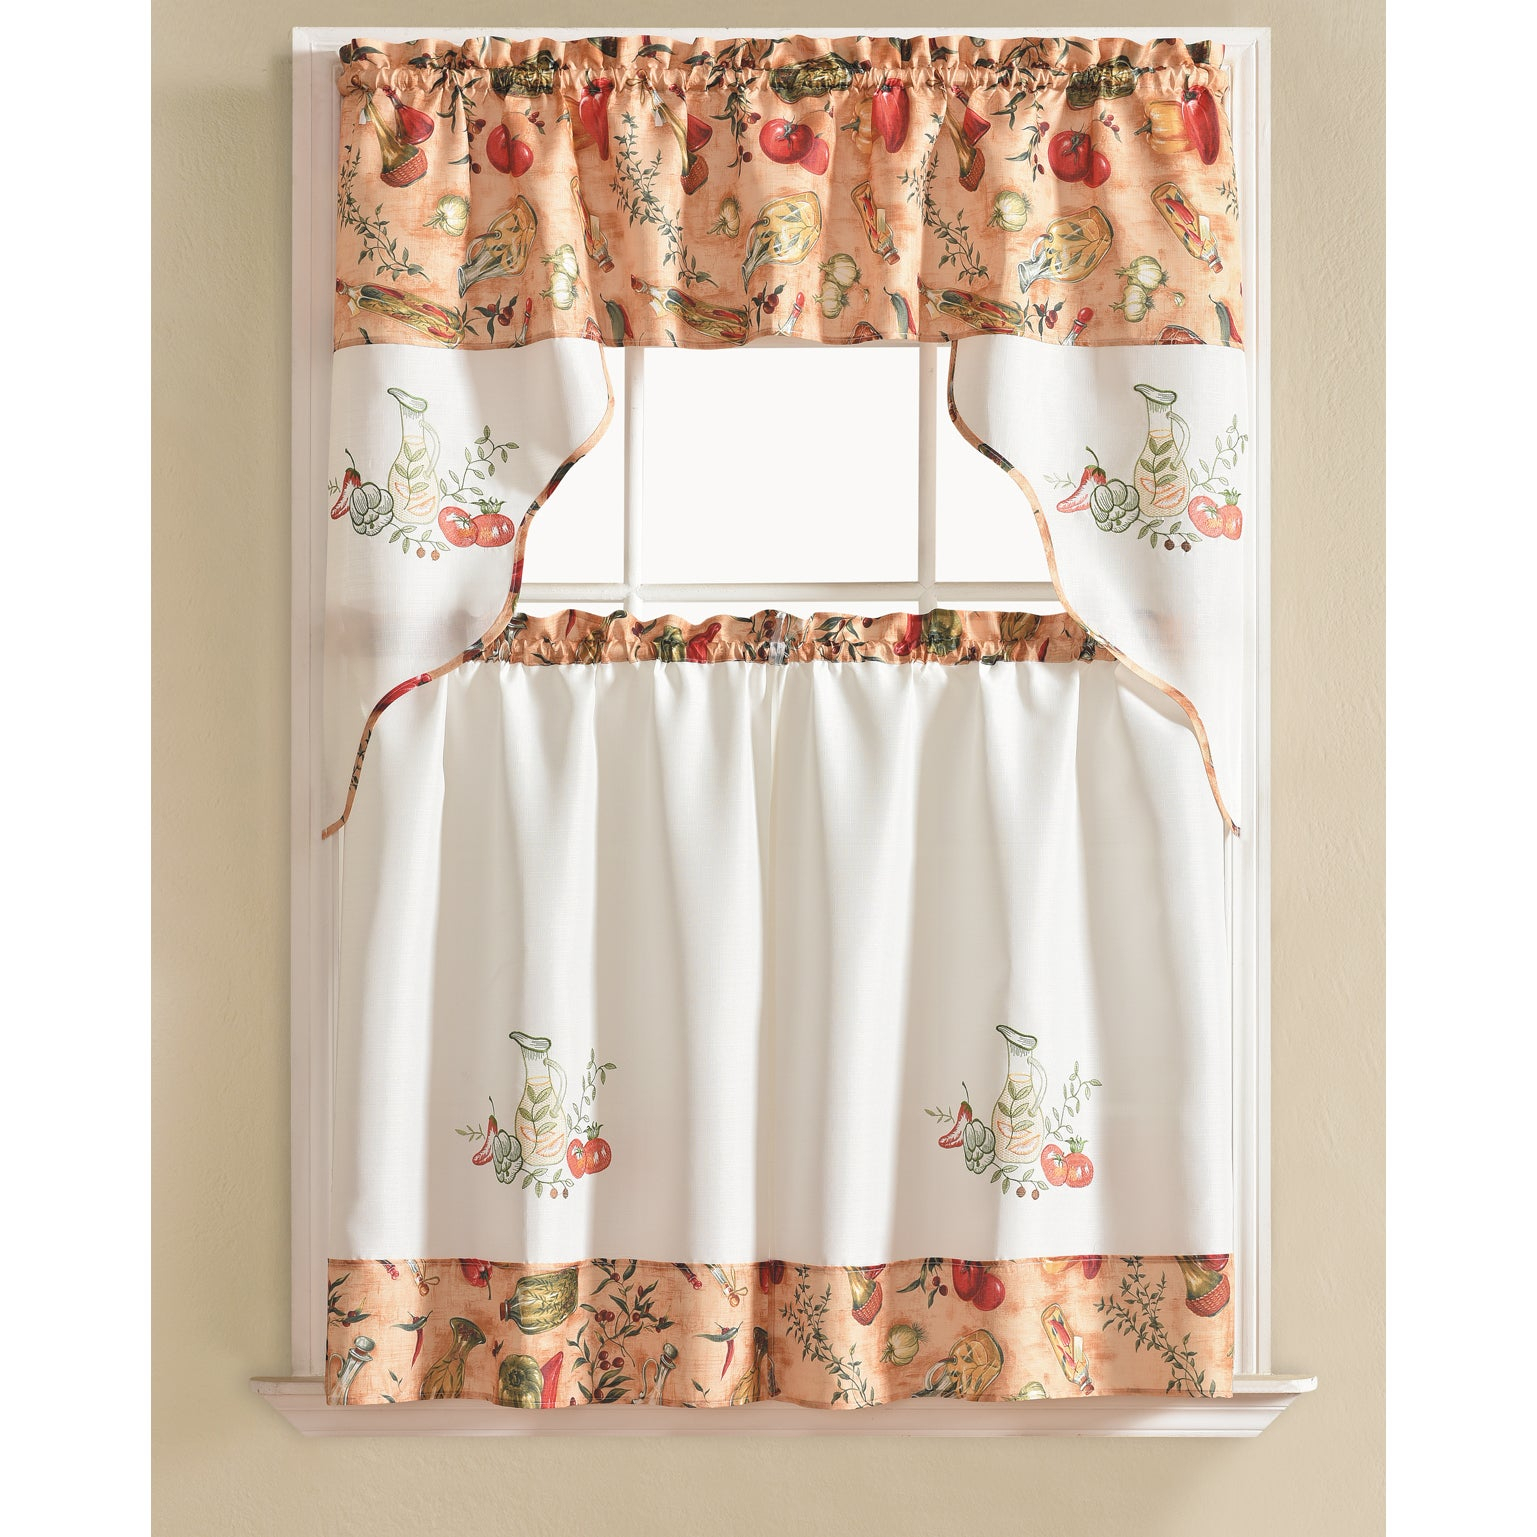 Rt Designers Collection Urban Embroidered Tier And Valance Kitchen Curtain  Tier Set With Regard To Lemon Drop Tier And Valance Window Curtain Sets (Gallery 6 of 20)